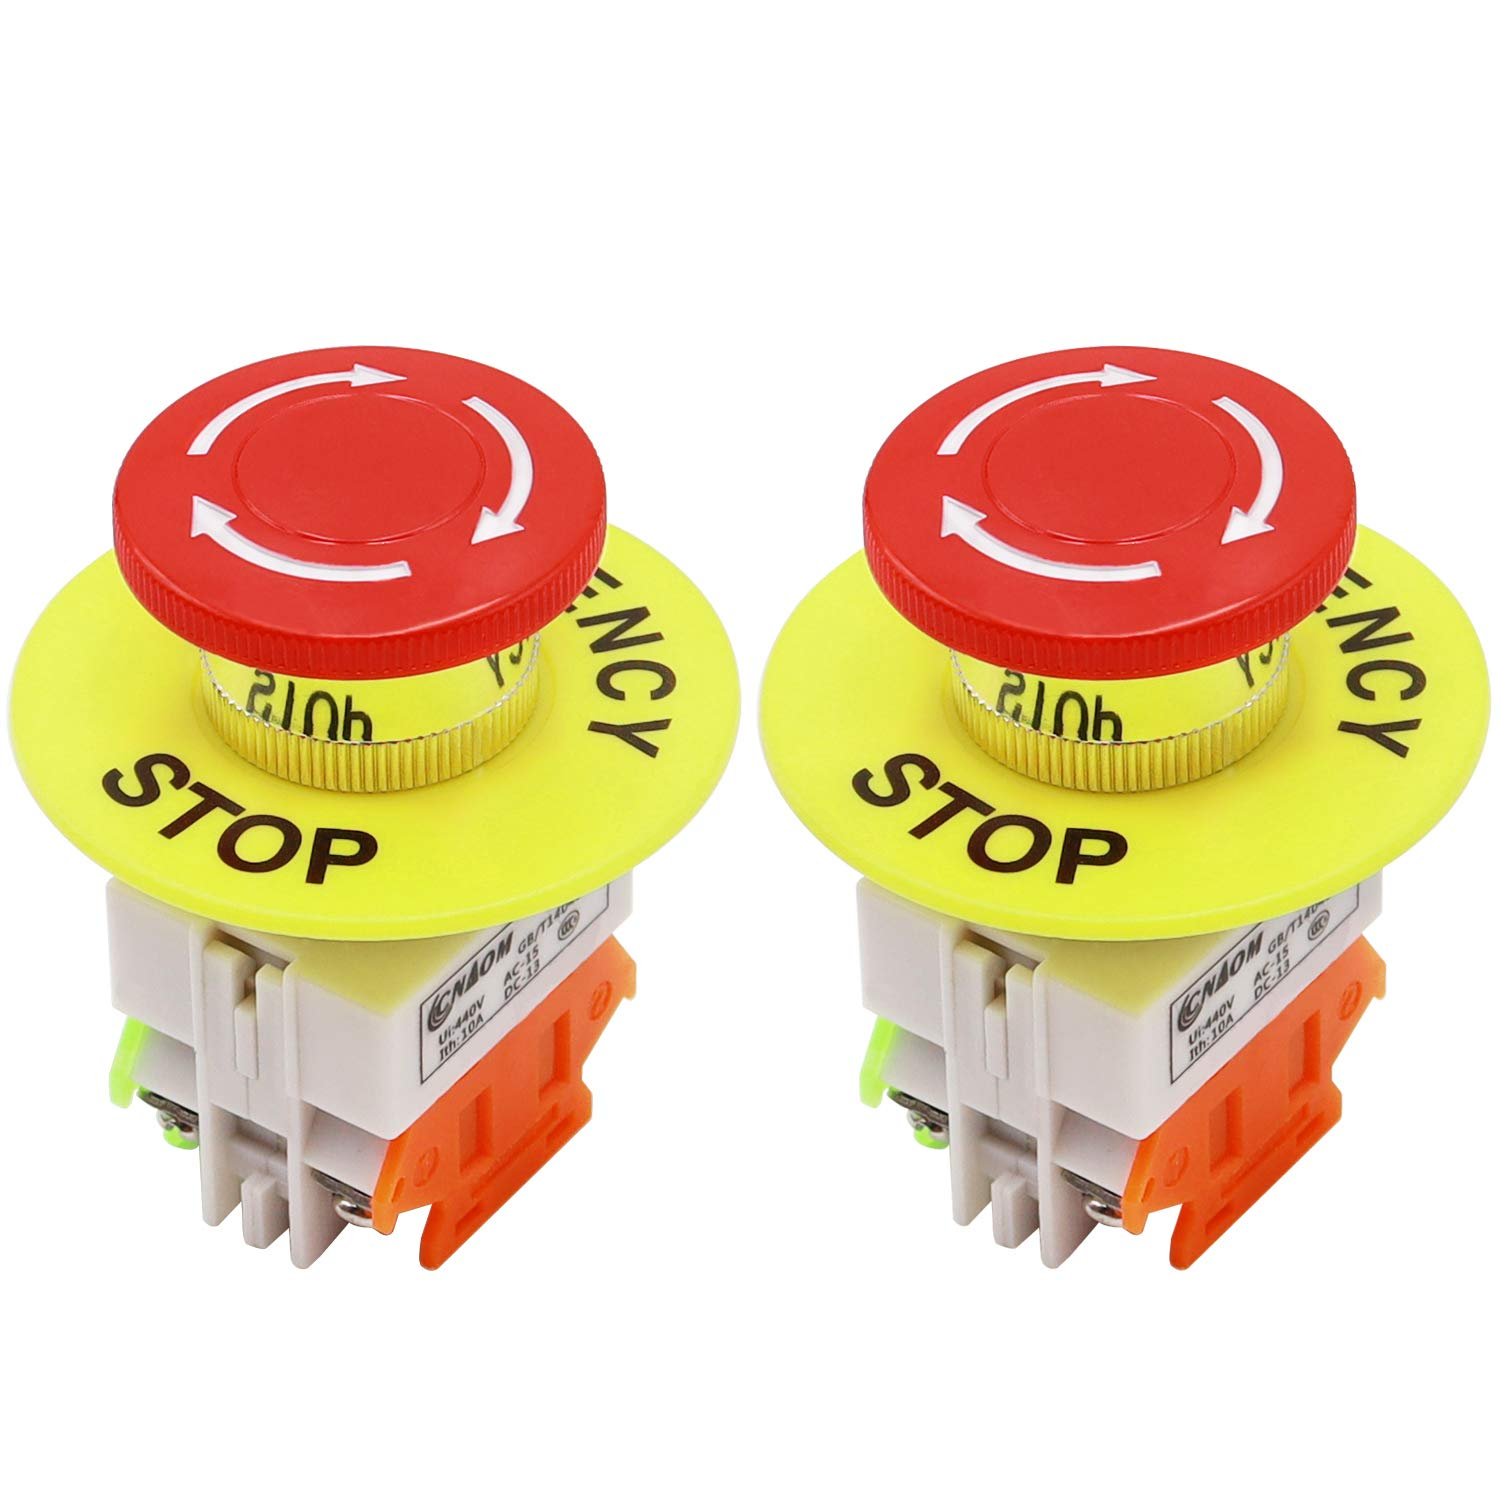 mxuteuk 2pcs 22mm 1NO 1NC Red Mushroom Latching Emergency Stop Push Button Switch with 60mm Emergency Stop Sign 10A 440V LAY37